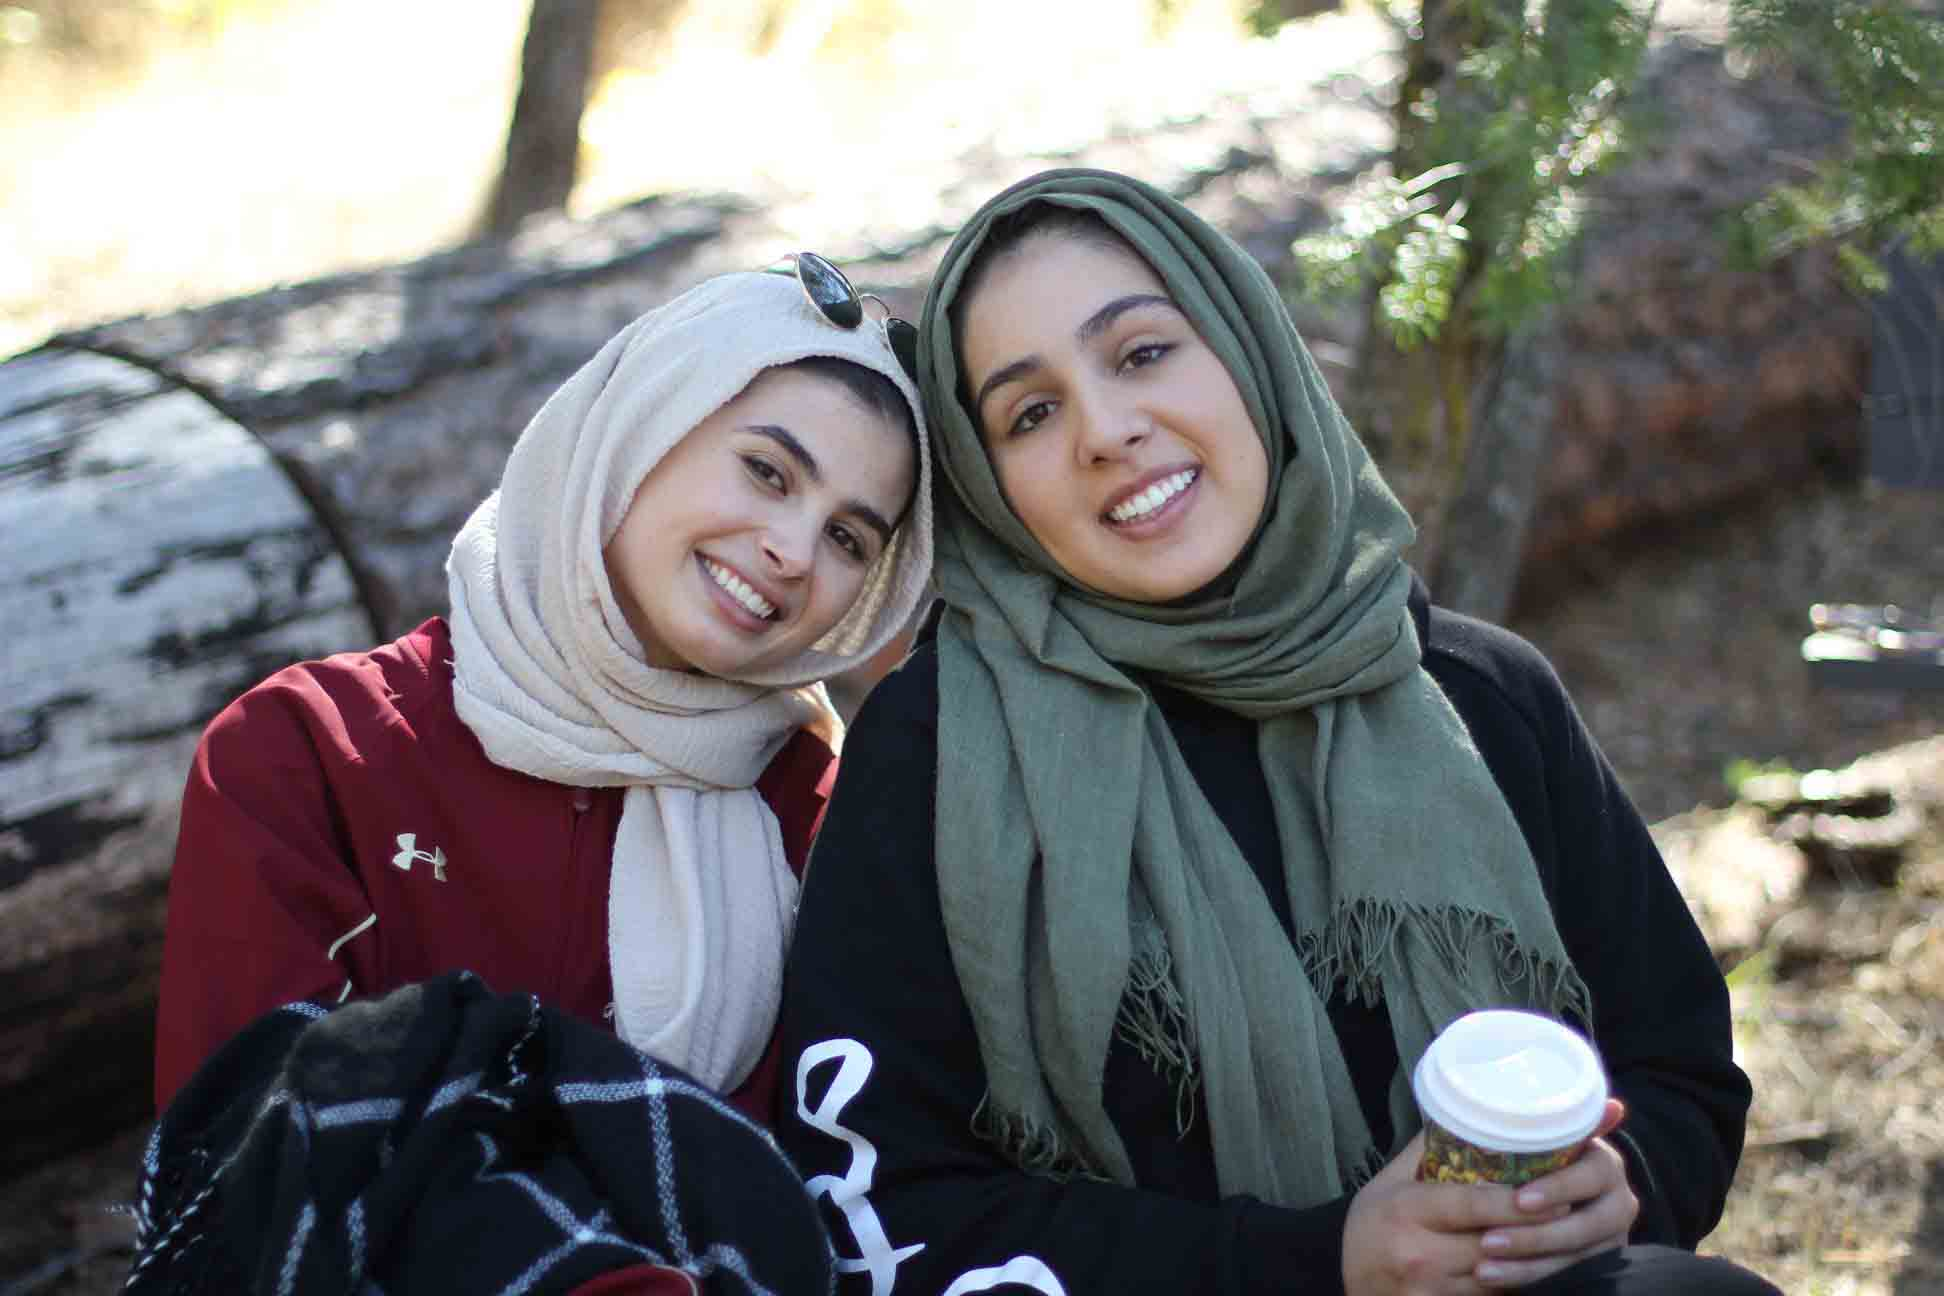 Two college-aged women wearing hijab smiling